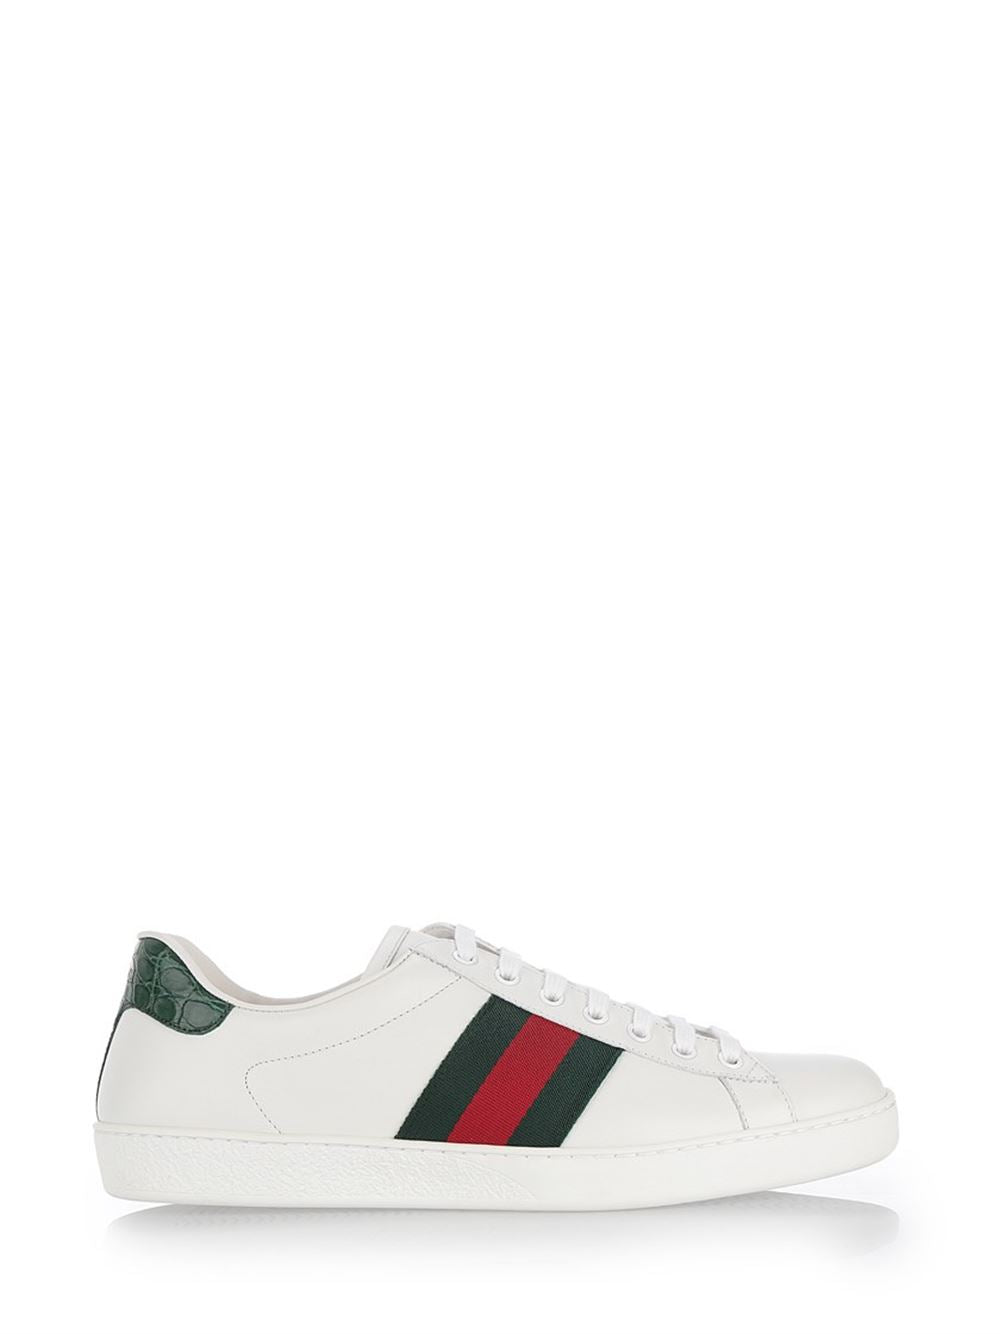 Gucci GUCCI ACE LOW